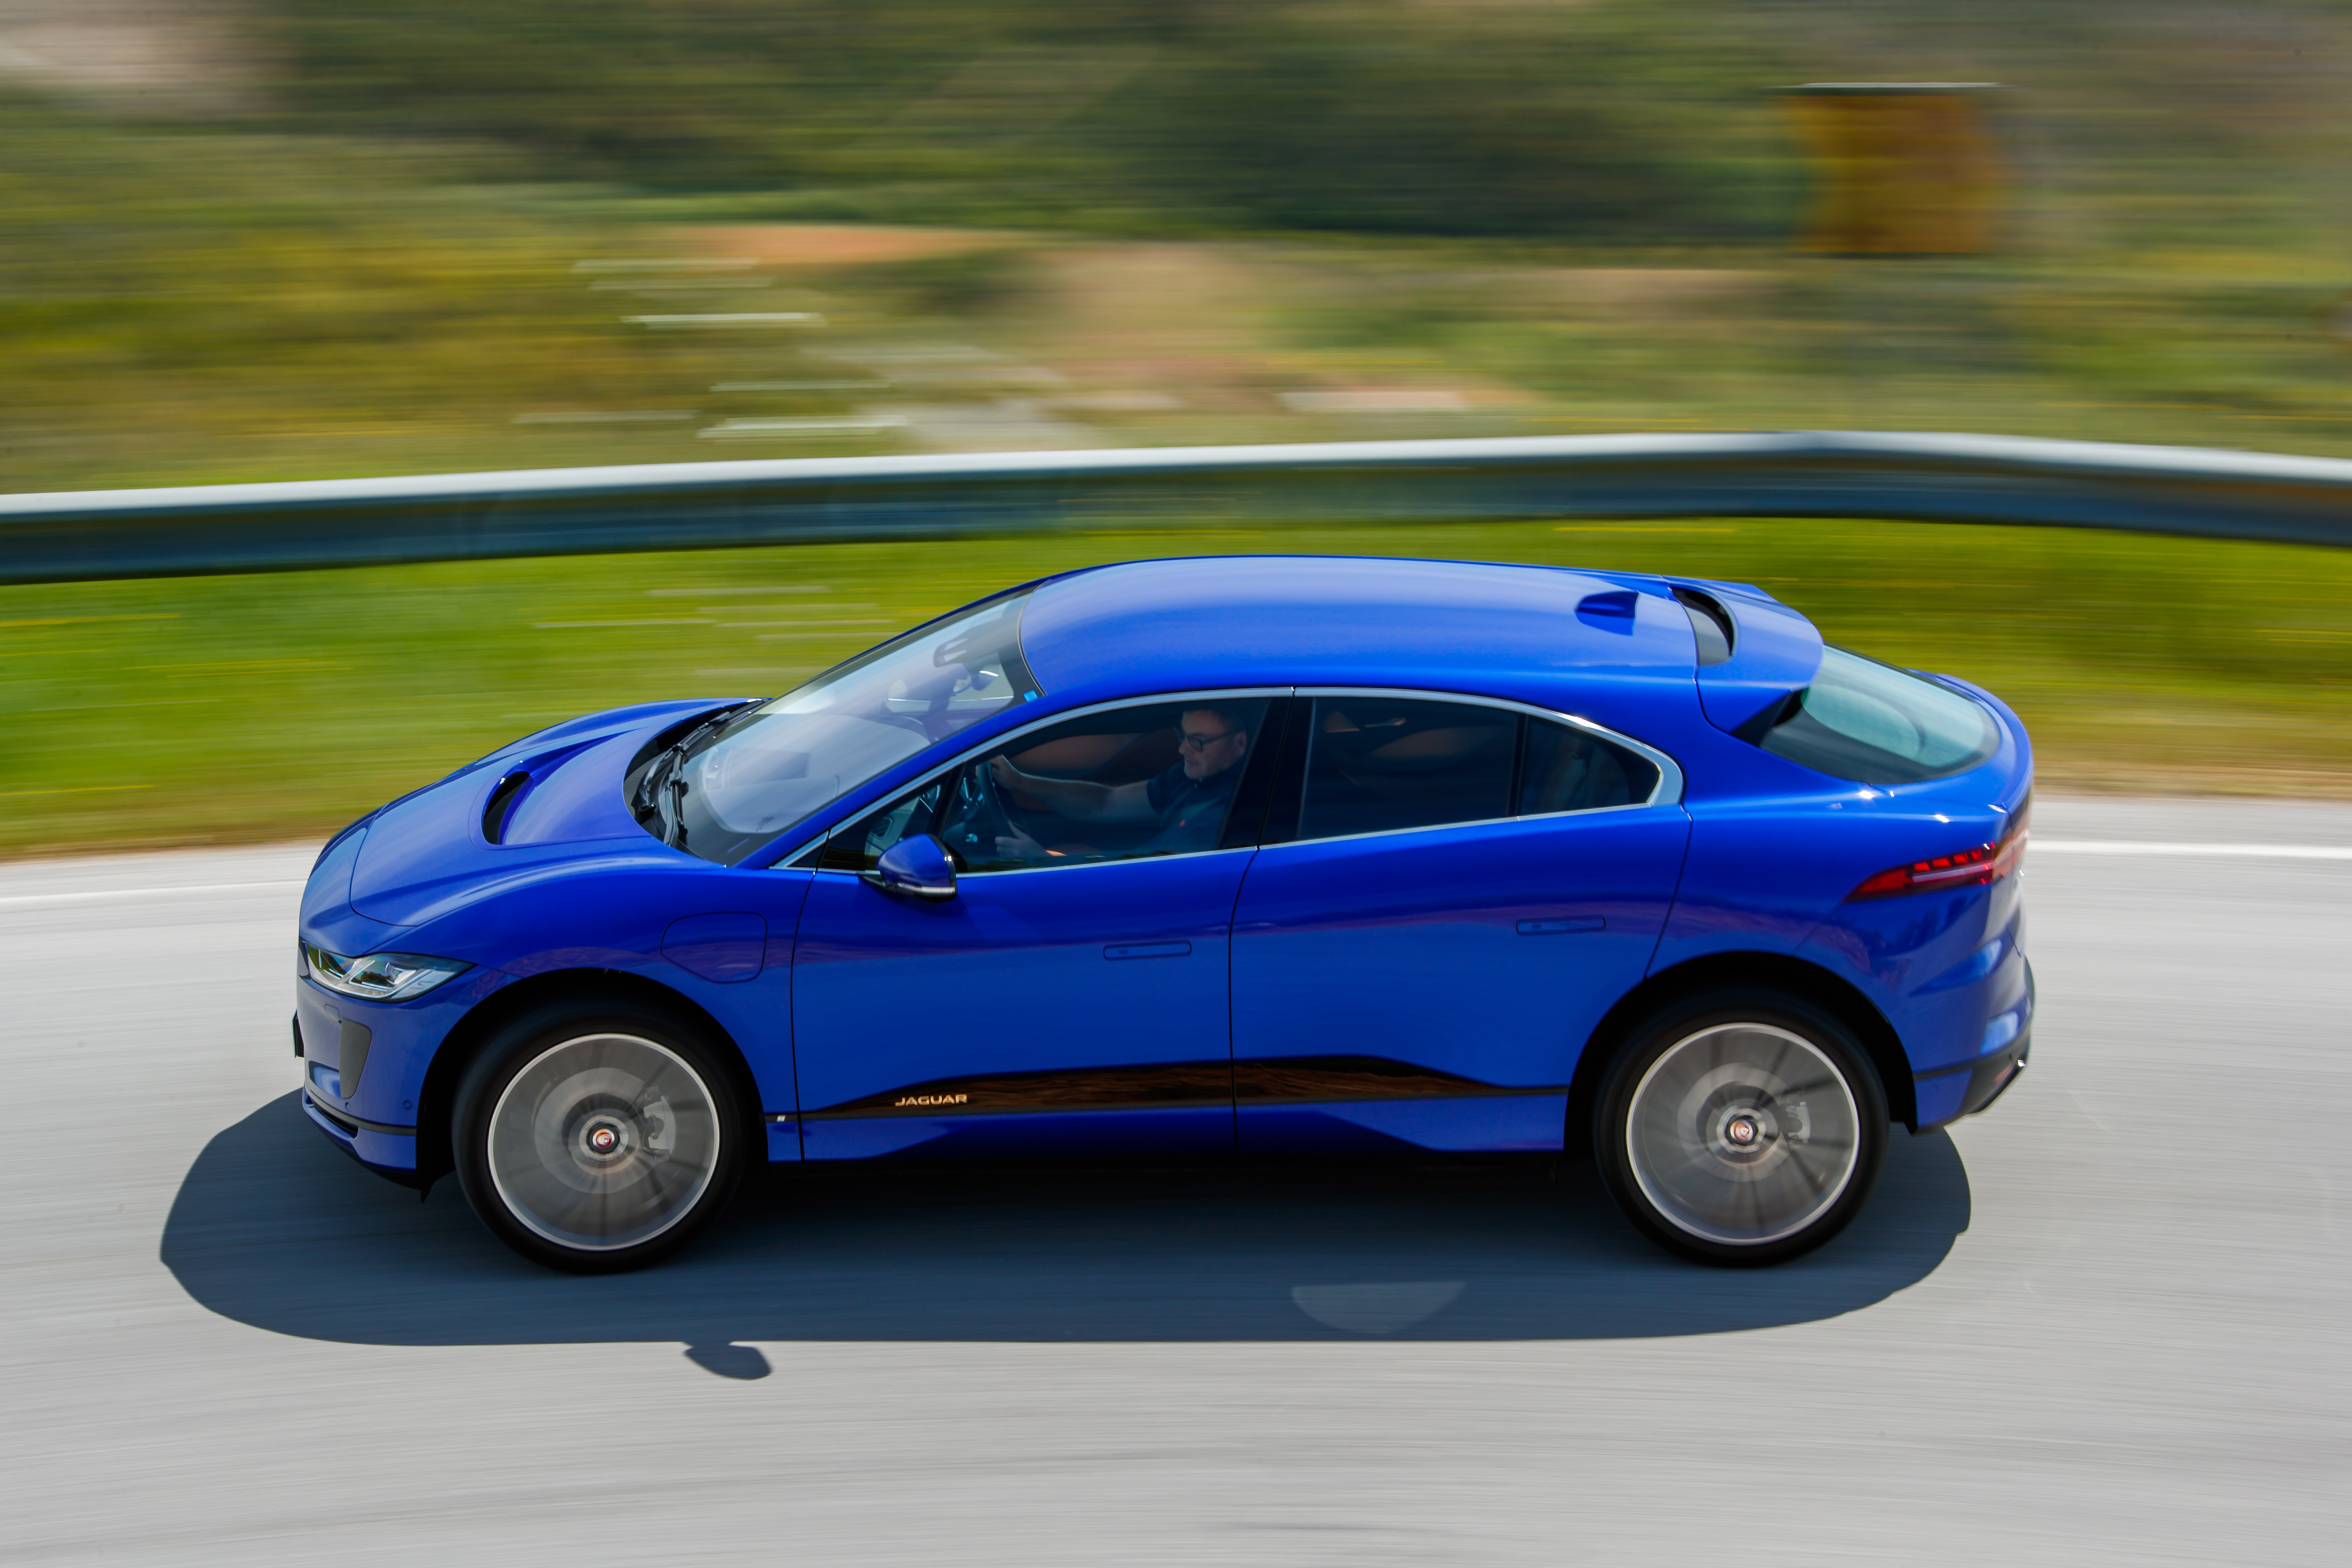 Jaguar I-PACE profile